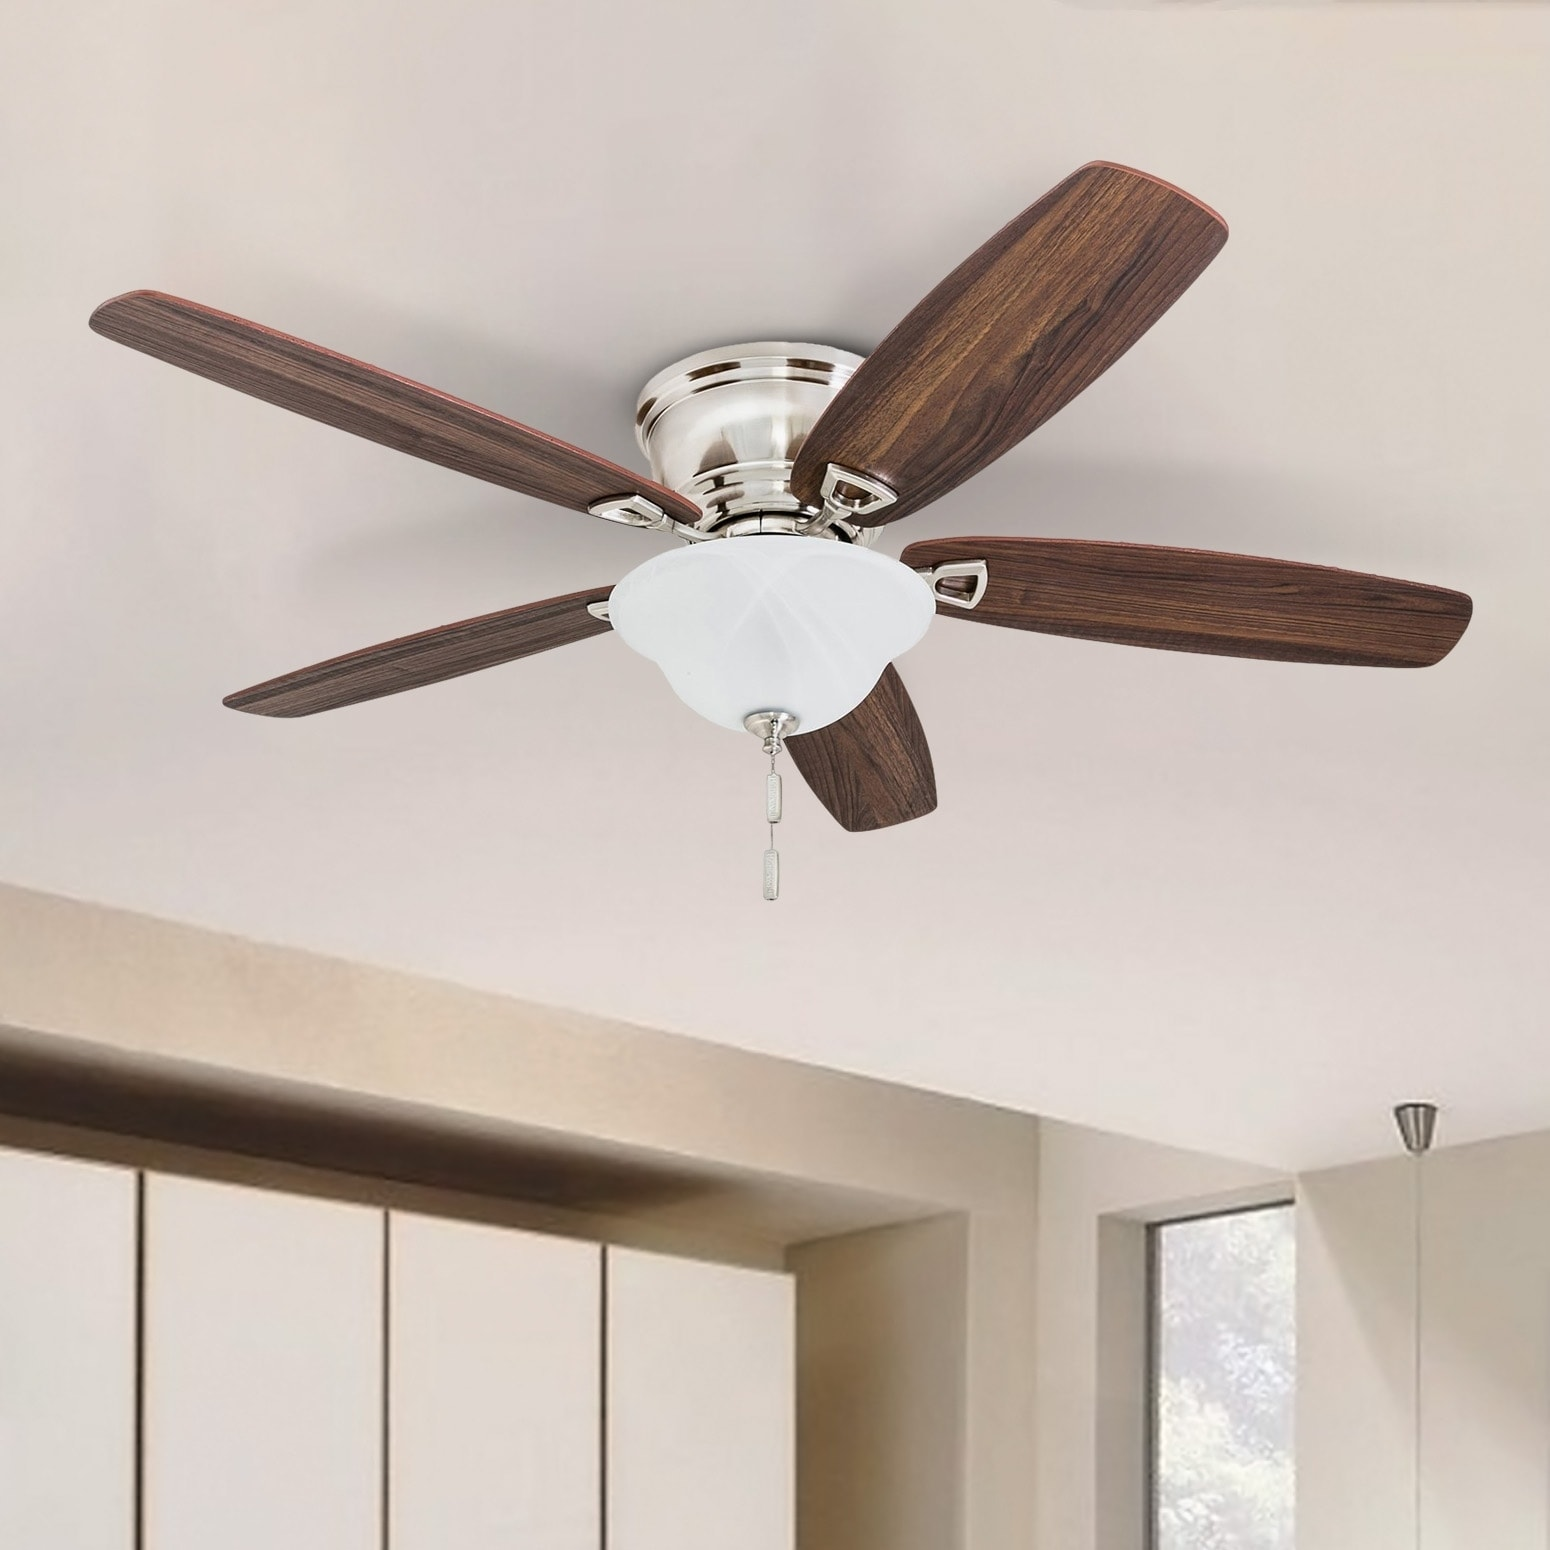 Heating Cooling Air Low Profile Ceiling Fan 52 In Led Contemporary Brushed Nickel Flush Mount Dome Home Furniture Diy Breadcrumbs Ie